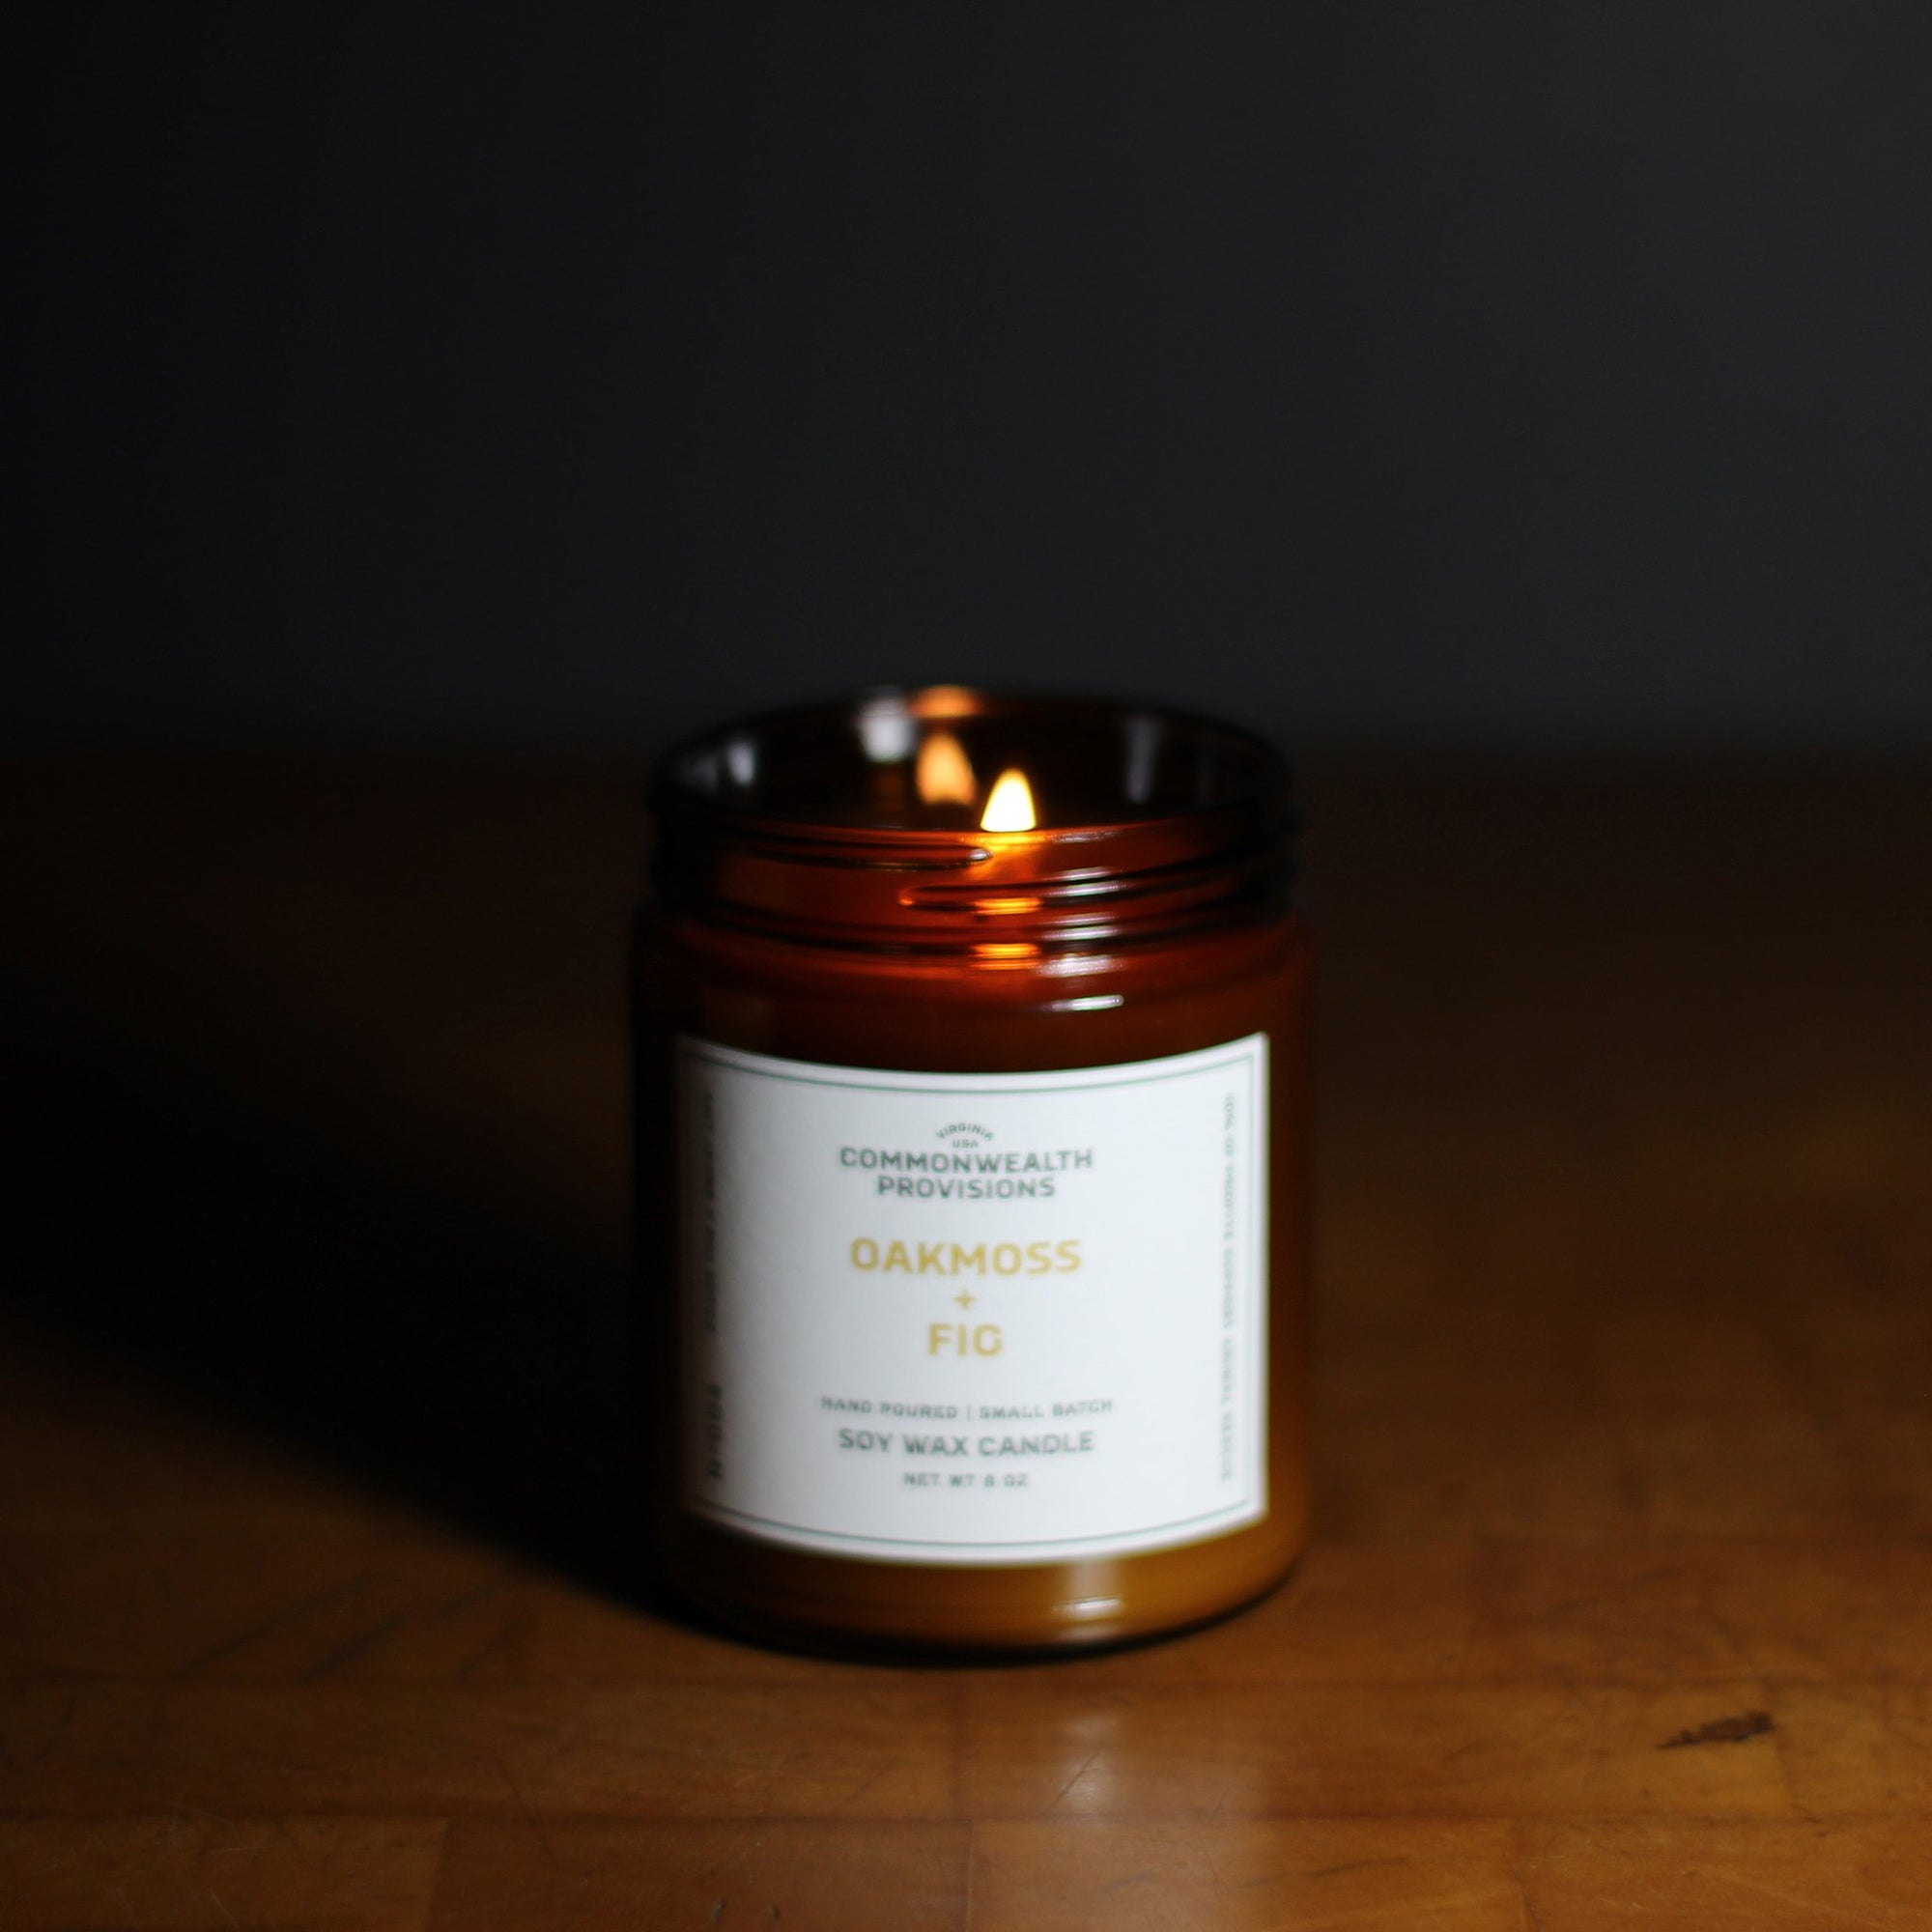 Commonwealth Provisions Oakmoss + Fig Candle